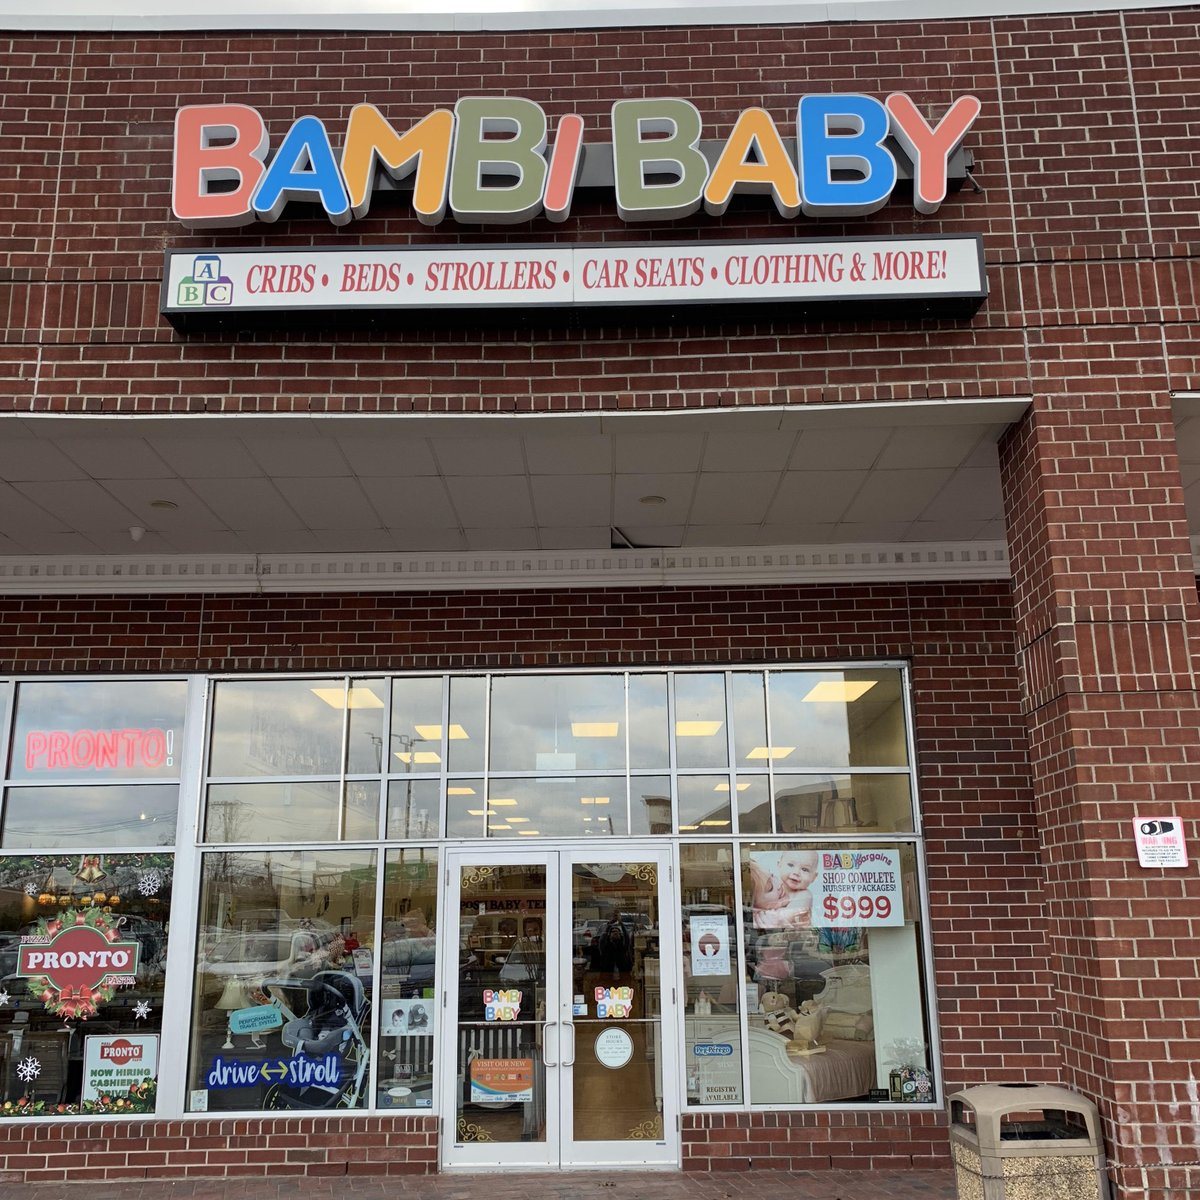 We Are Officially Open In Staten Island Come Visit Us At 2935 Veterans Rd W Ny So Excited To Have Our Bambi Baby Family Serve The